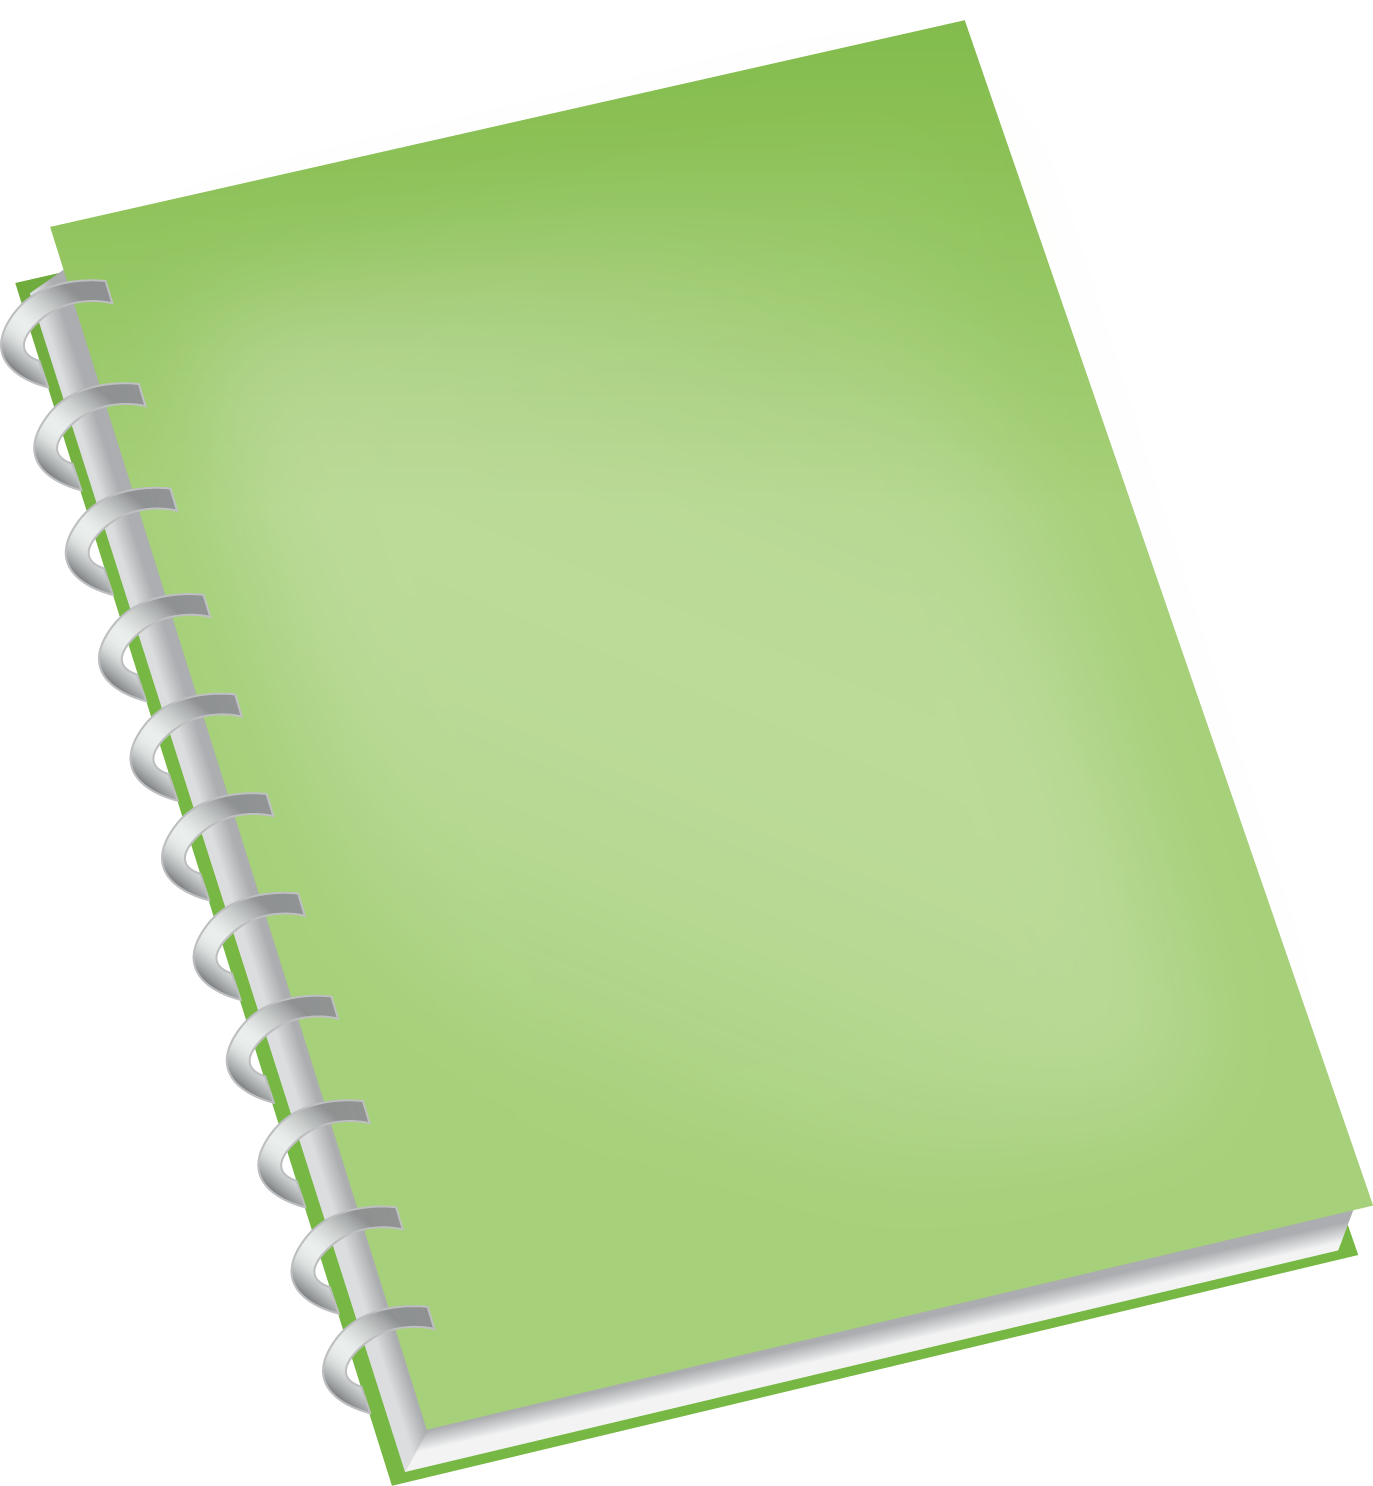 Png . Report clipart notebook